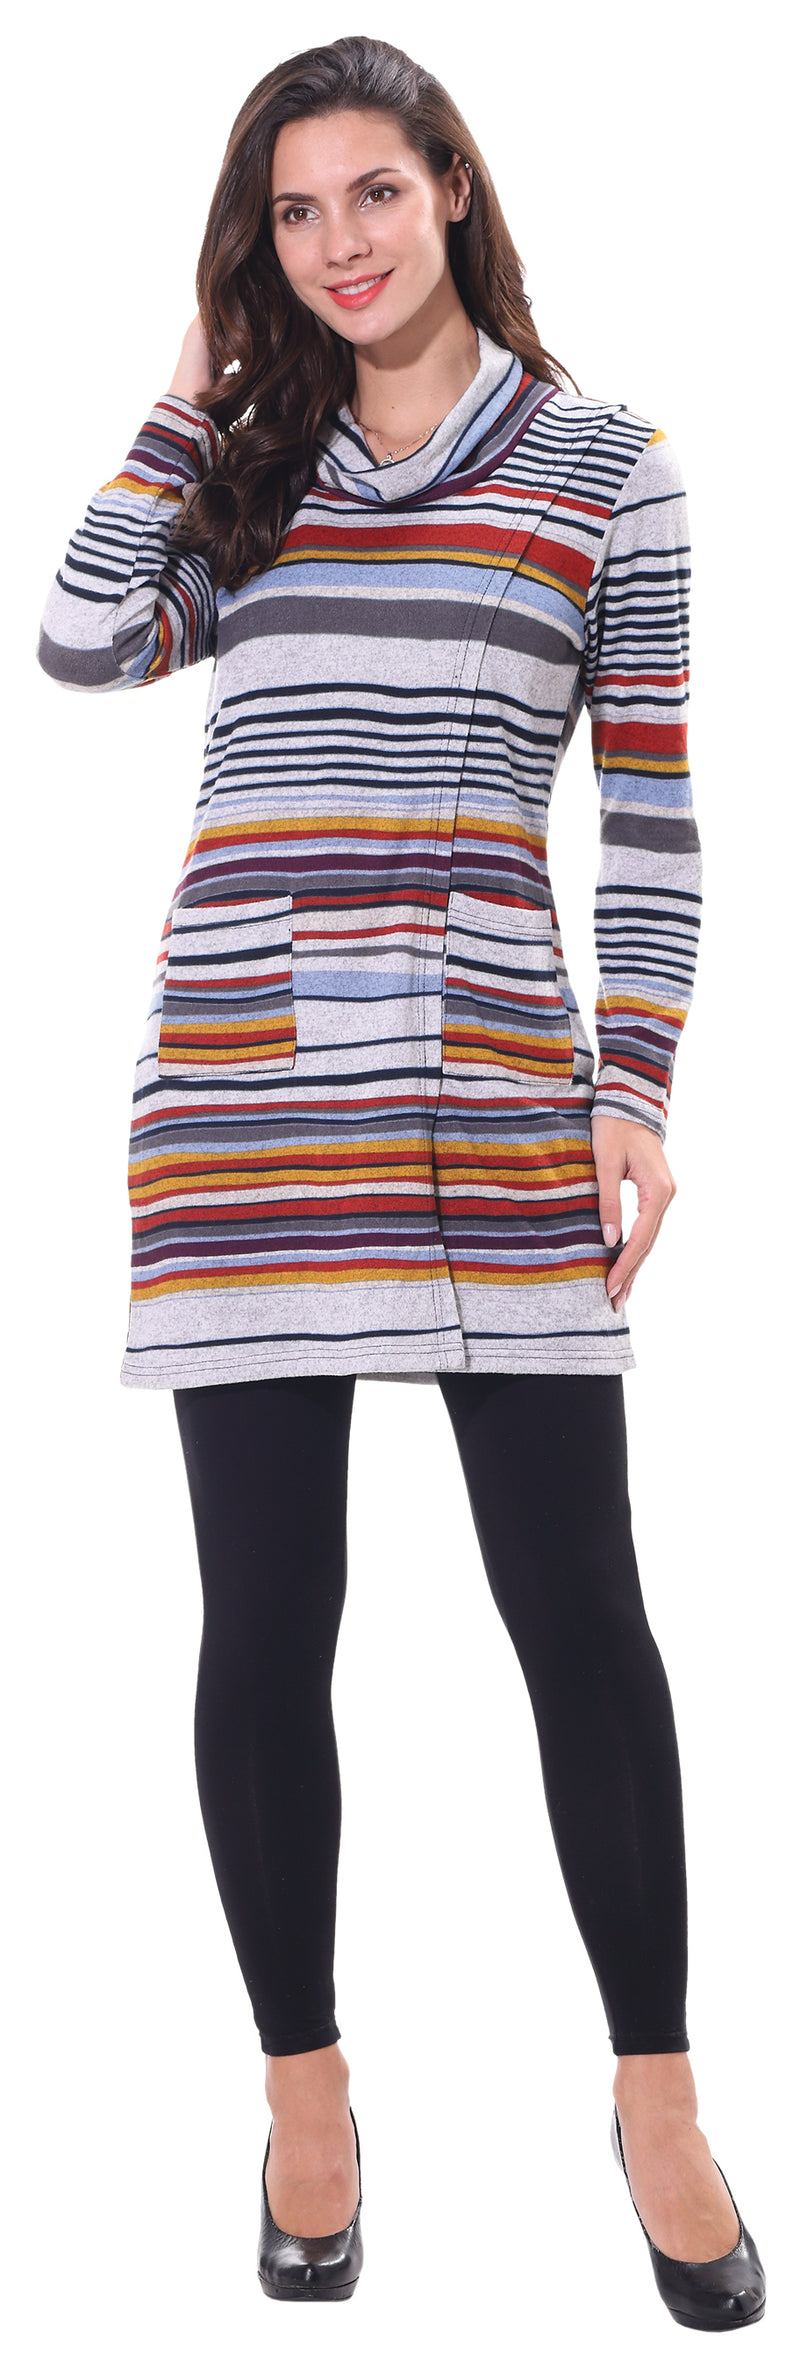 Ladies' Stripe Sweater Dress